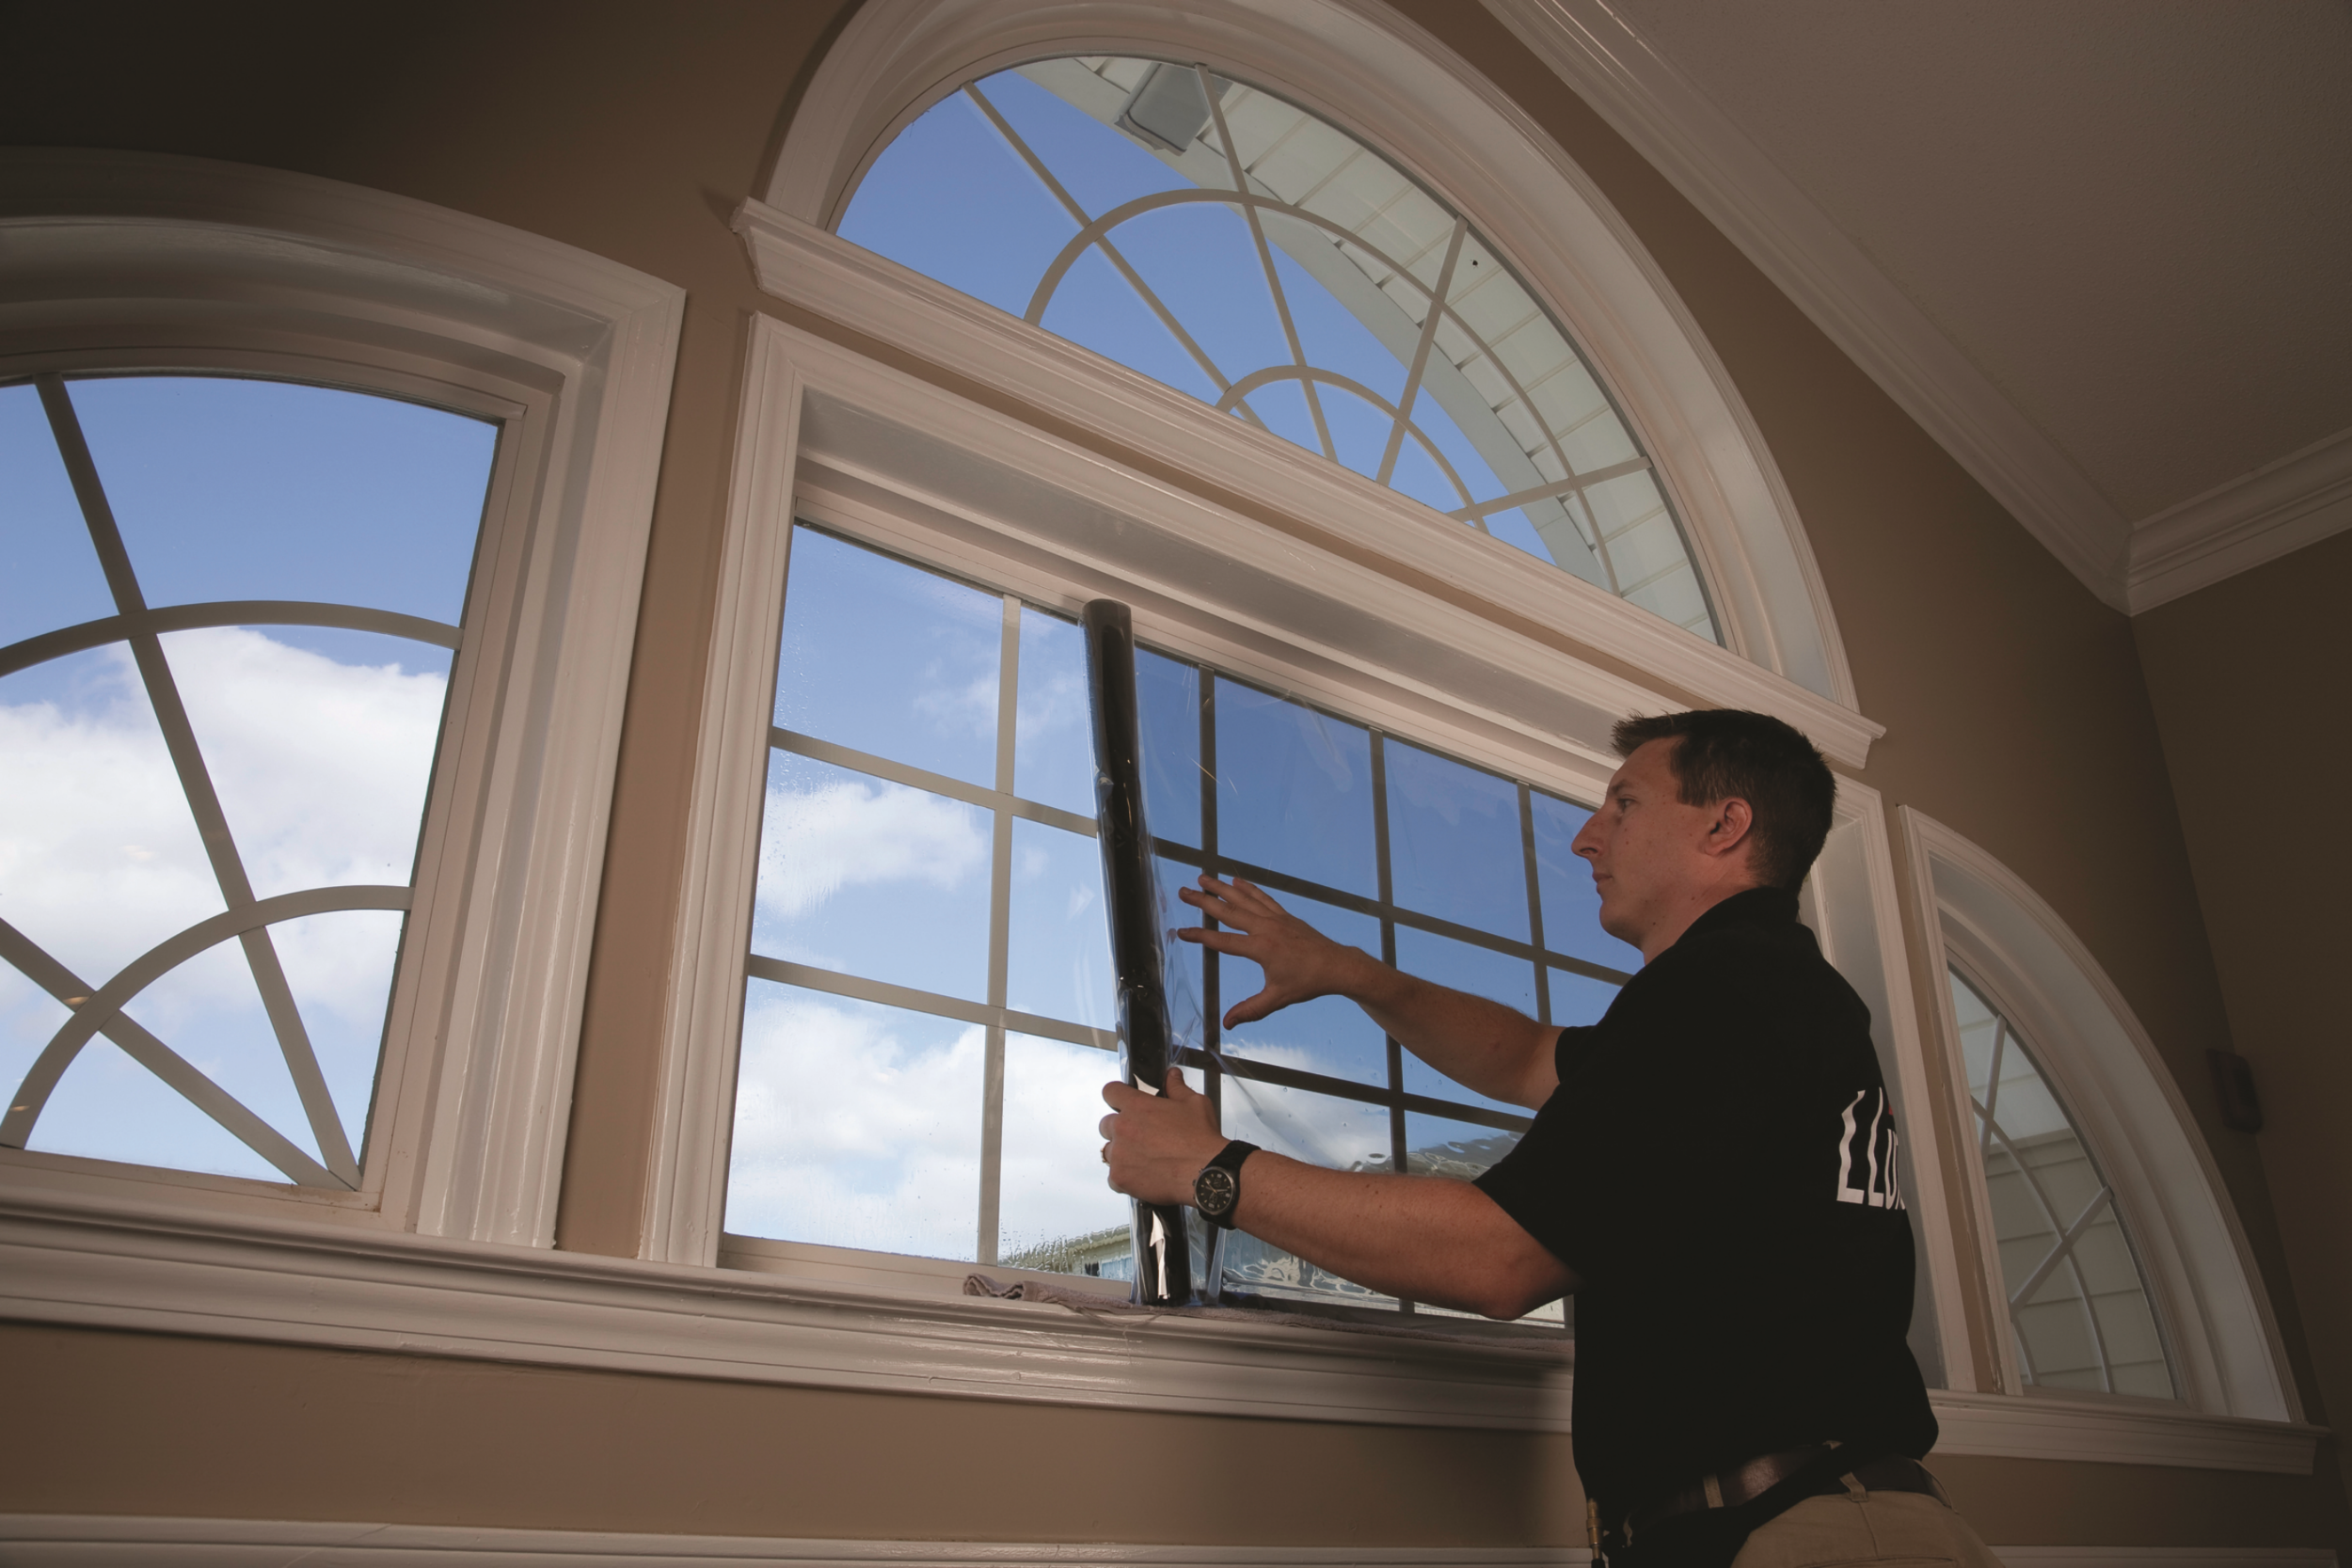 LLumar Window Film. LLumar Solar Film. Residential Window Tinting. Residential Solar Film. Professional Installation. Apex. Cary. Raleigh. Durham. Holly Springs. North Carolina.